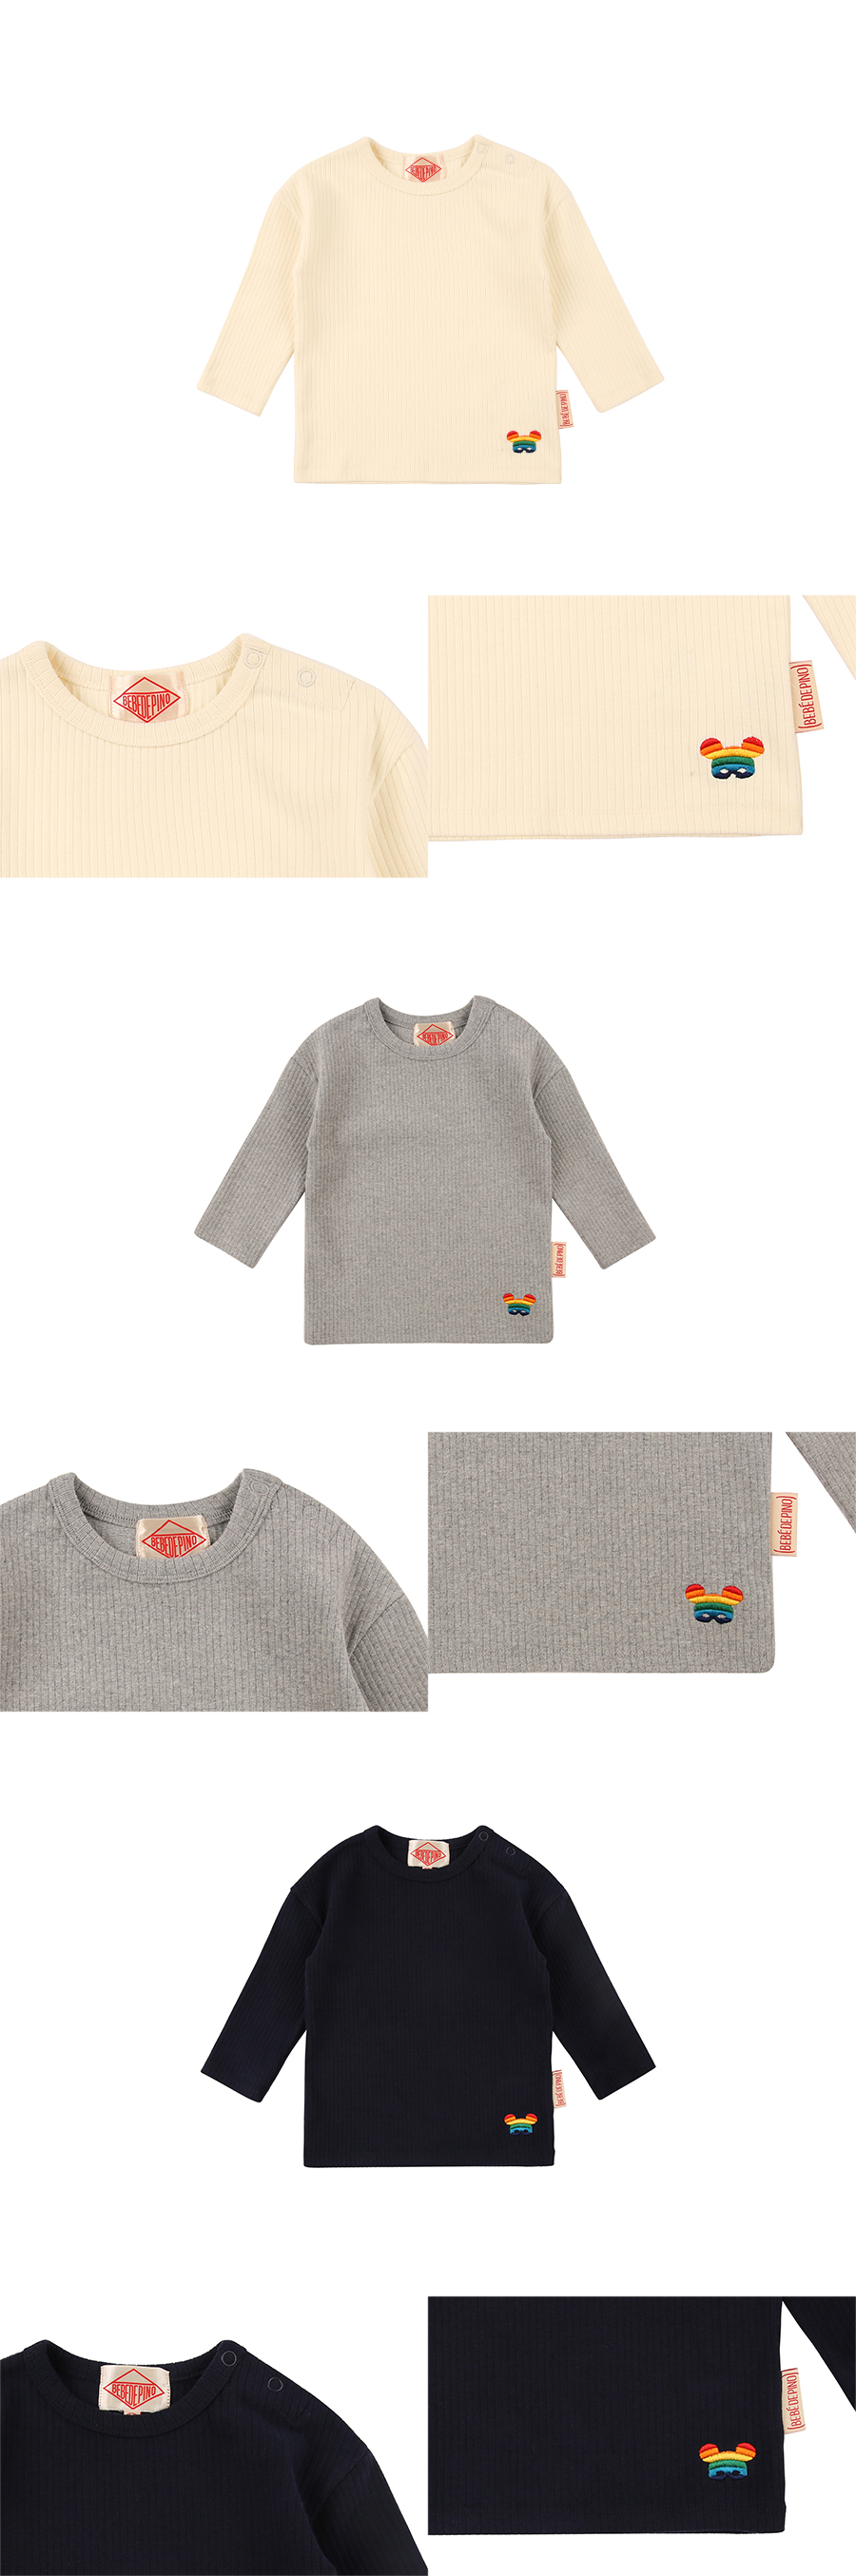 Basic baby ribbed knit long sleeve tee 상세 이미지